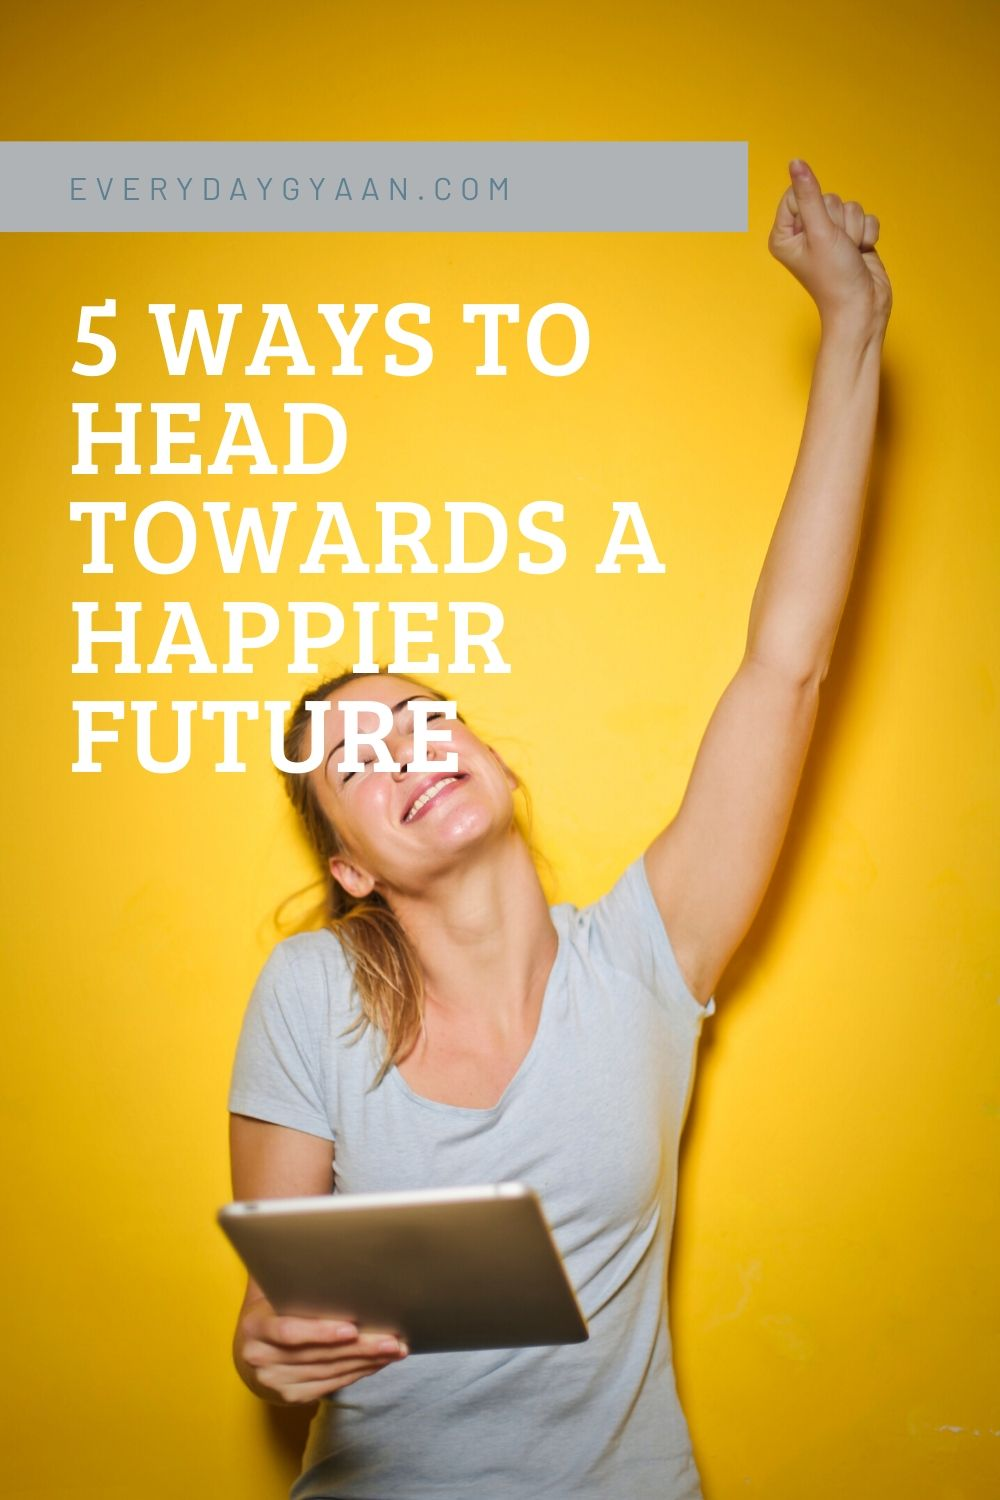 5 Ways To Head Towards a Happier Future